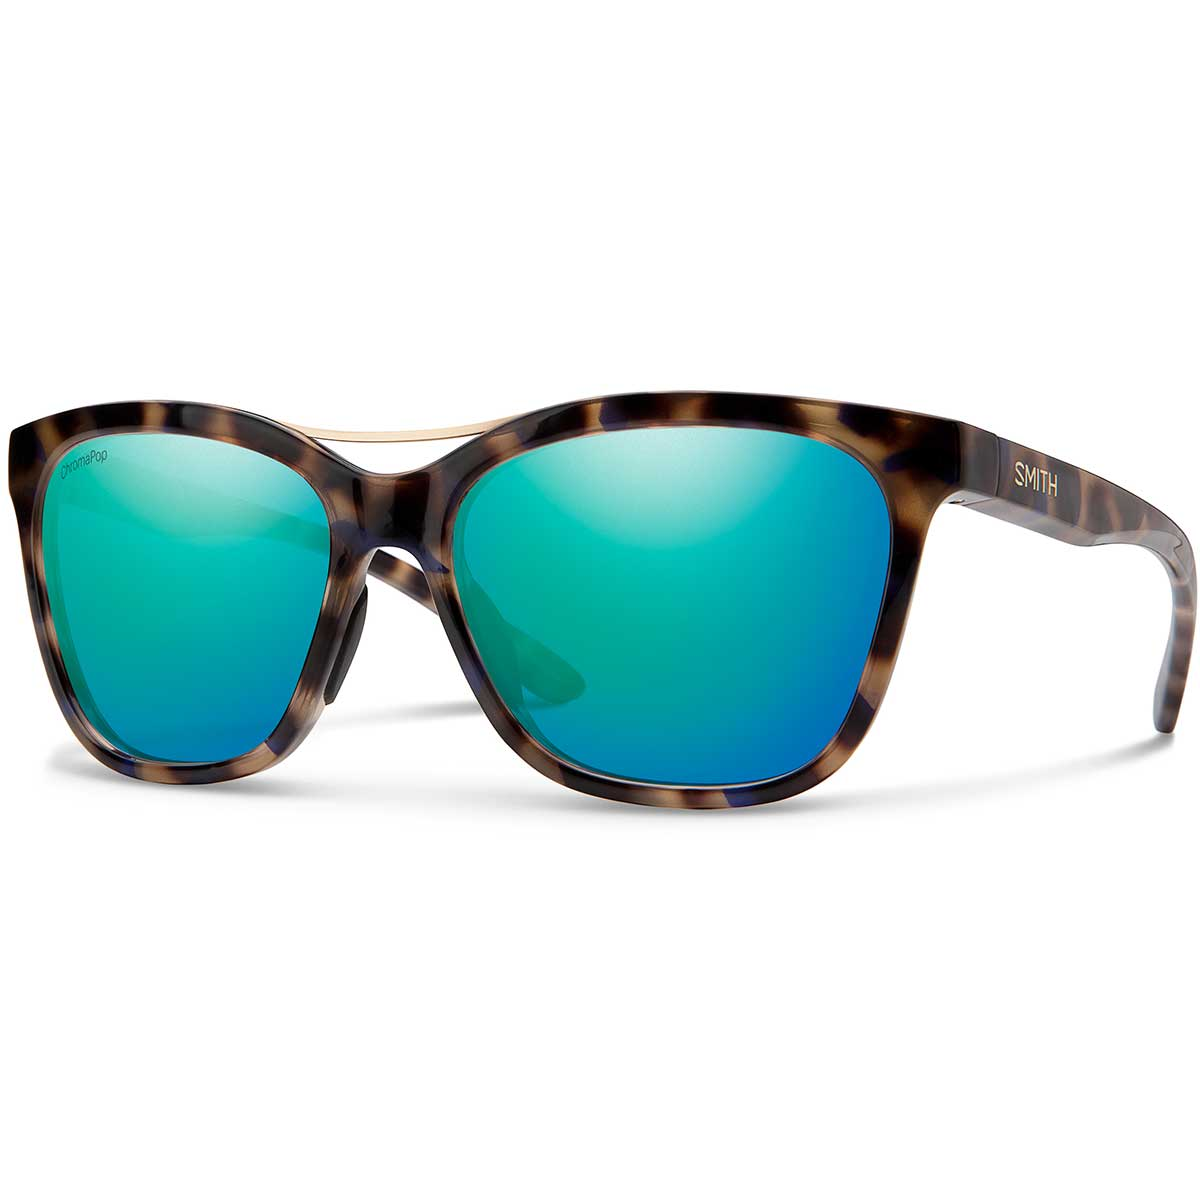 Smith Cavalier Sunglasses Chromapop in Violet Tortoise with Opal Mirror main view